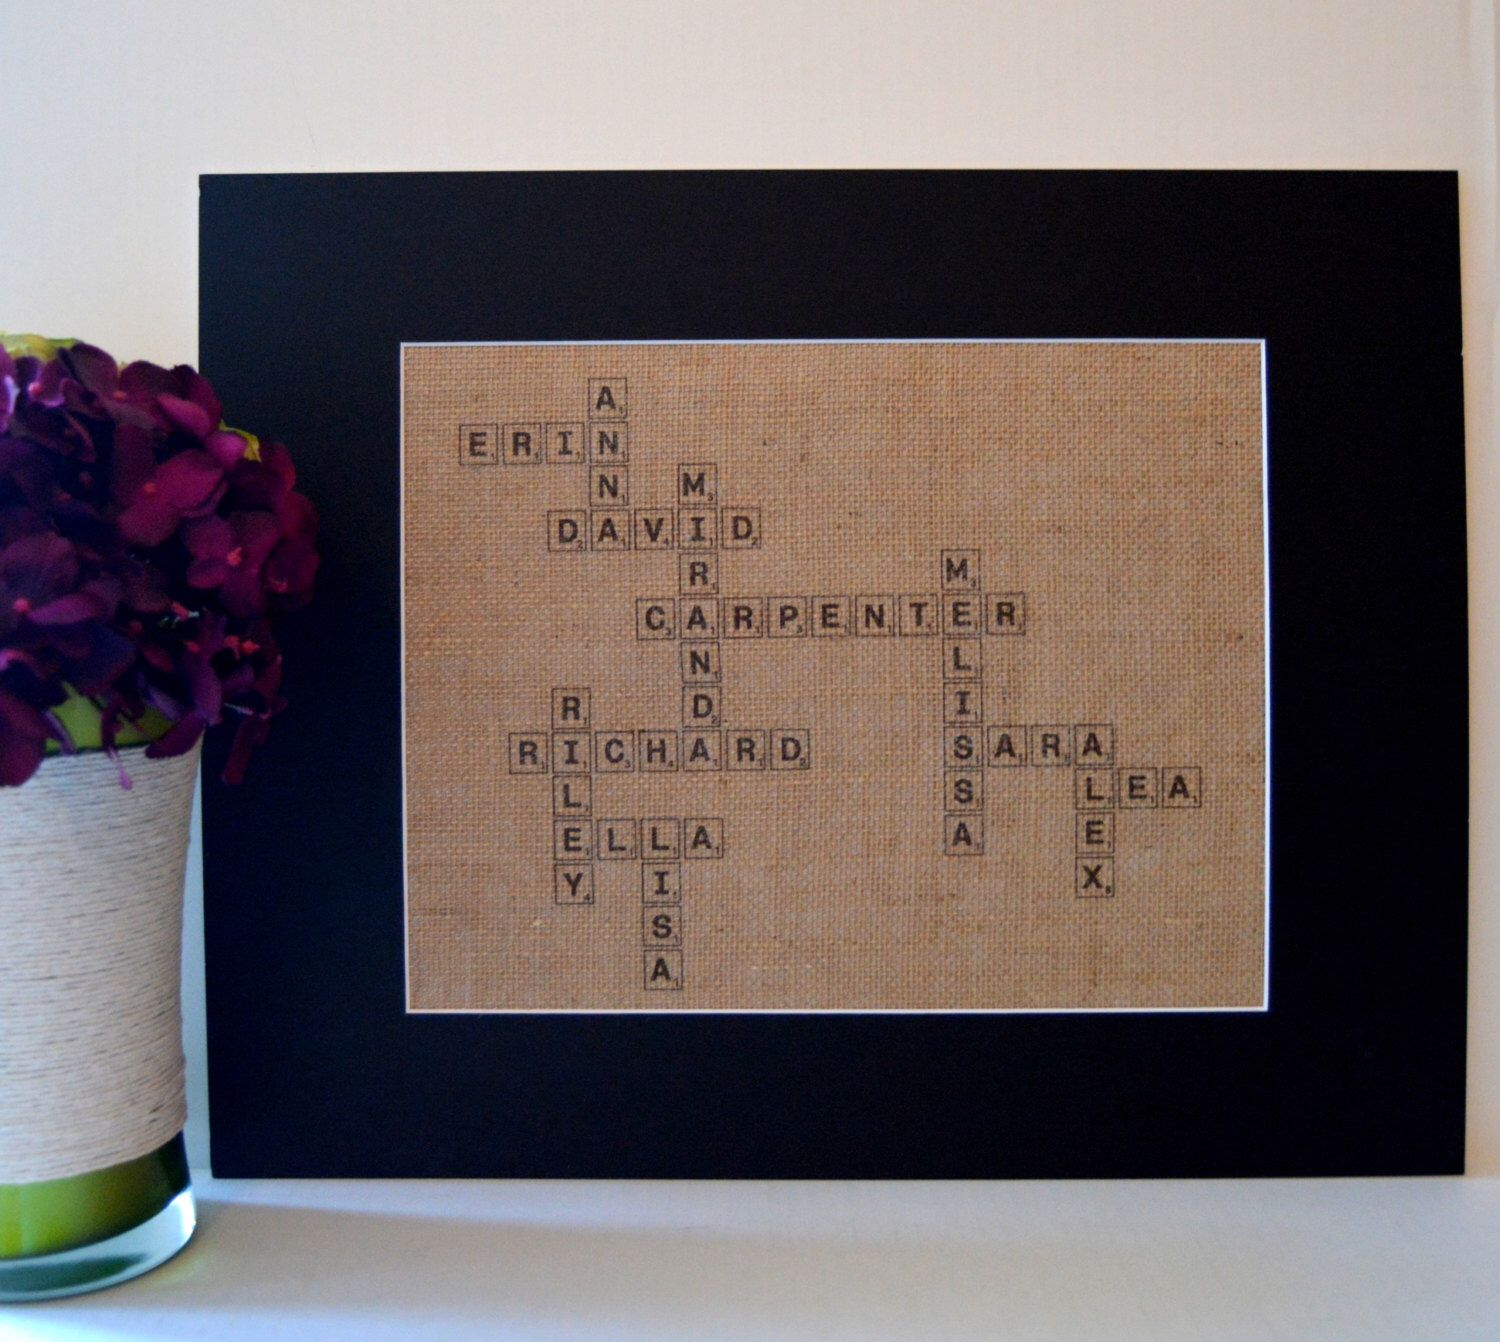 Scrabble Names Wall Art Scrabble Wall Art Large Burlap Print With Family Names In